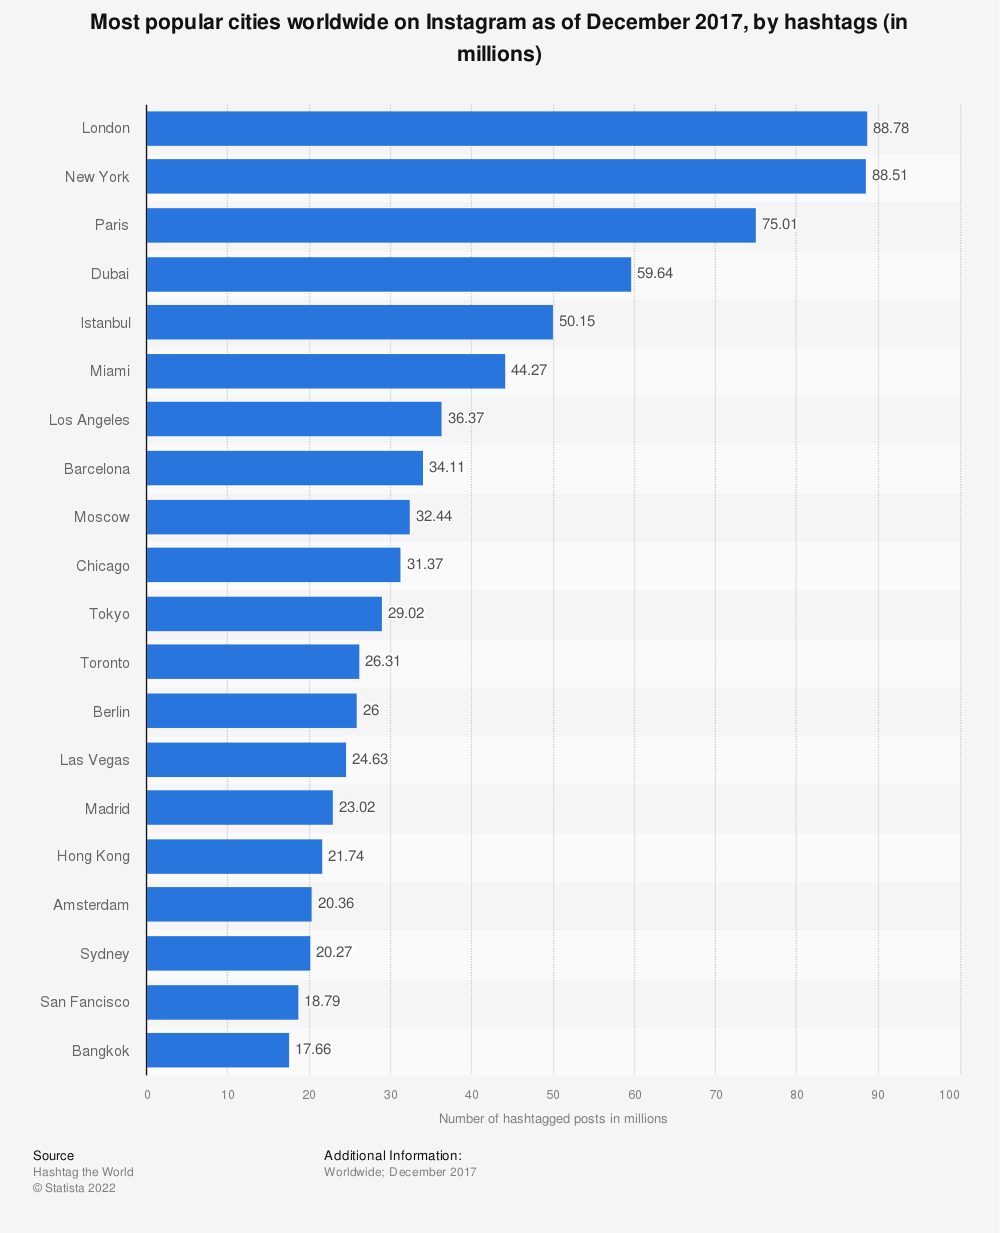 Statistic: Most popular cities worldwide on Instagram as of December 2017, by hashtags (in millions) | Statista